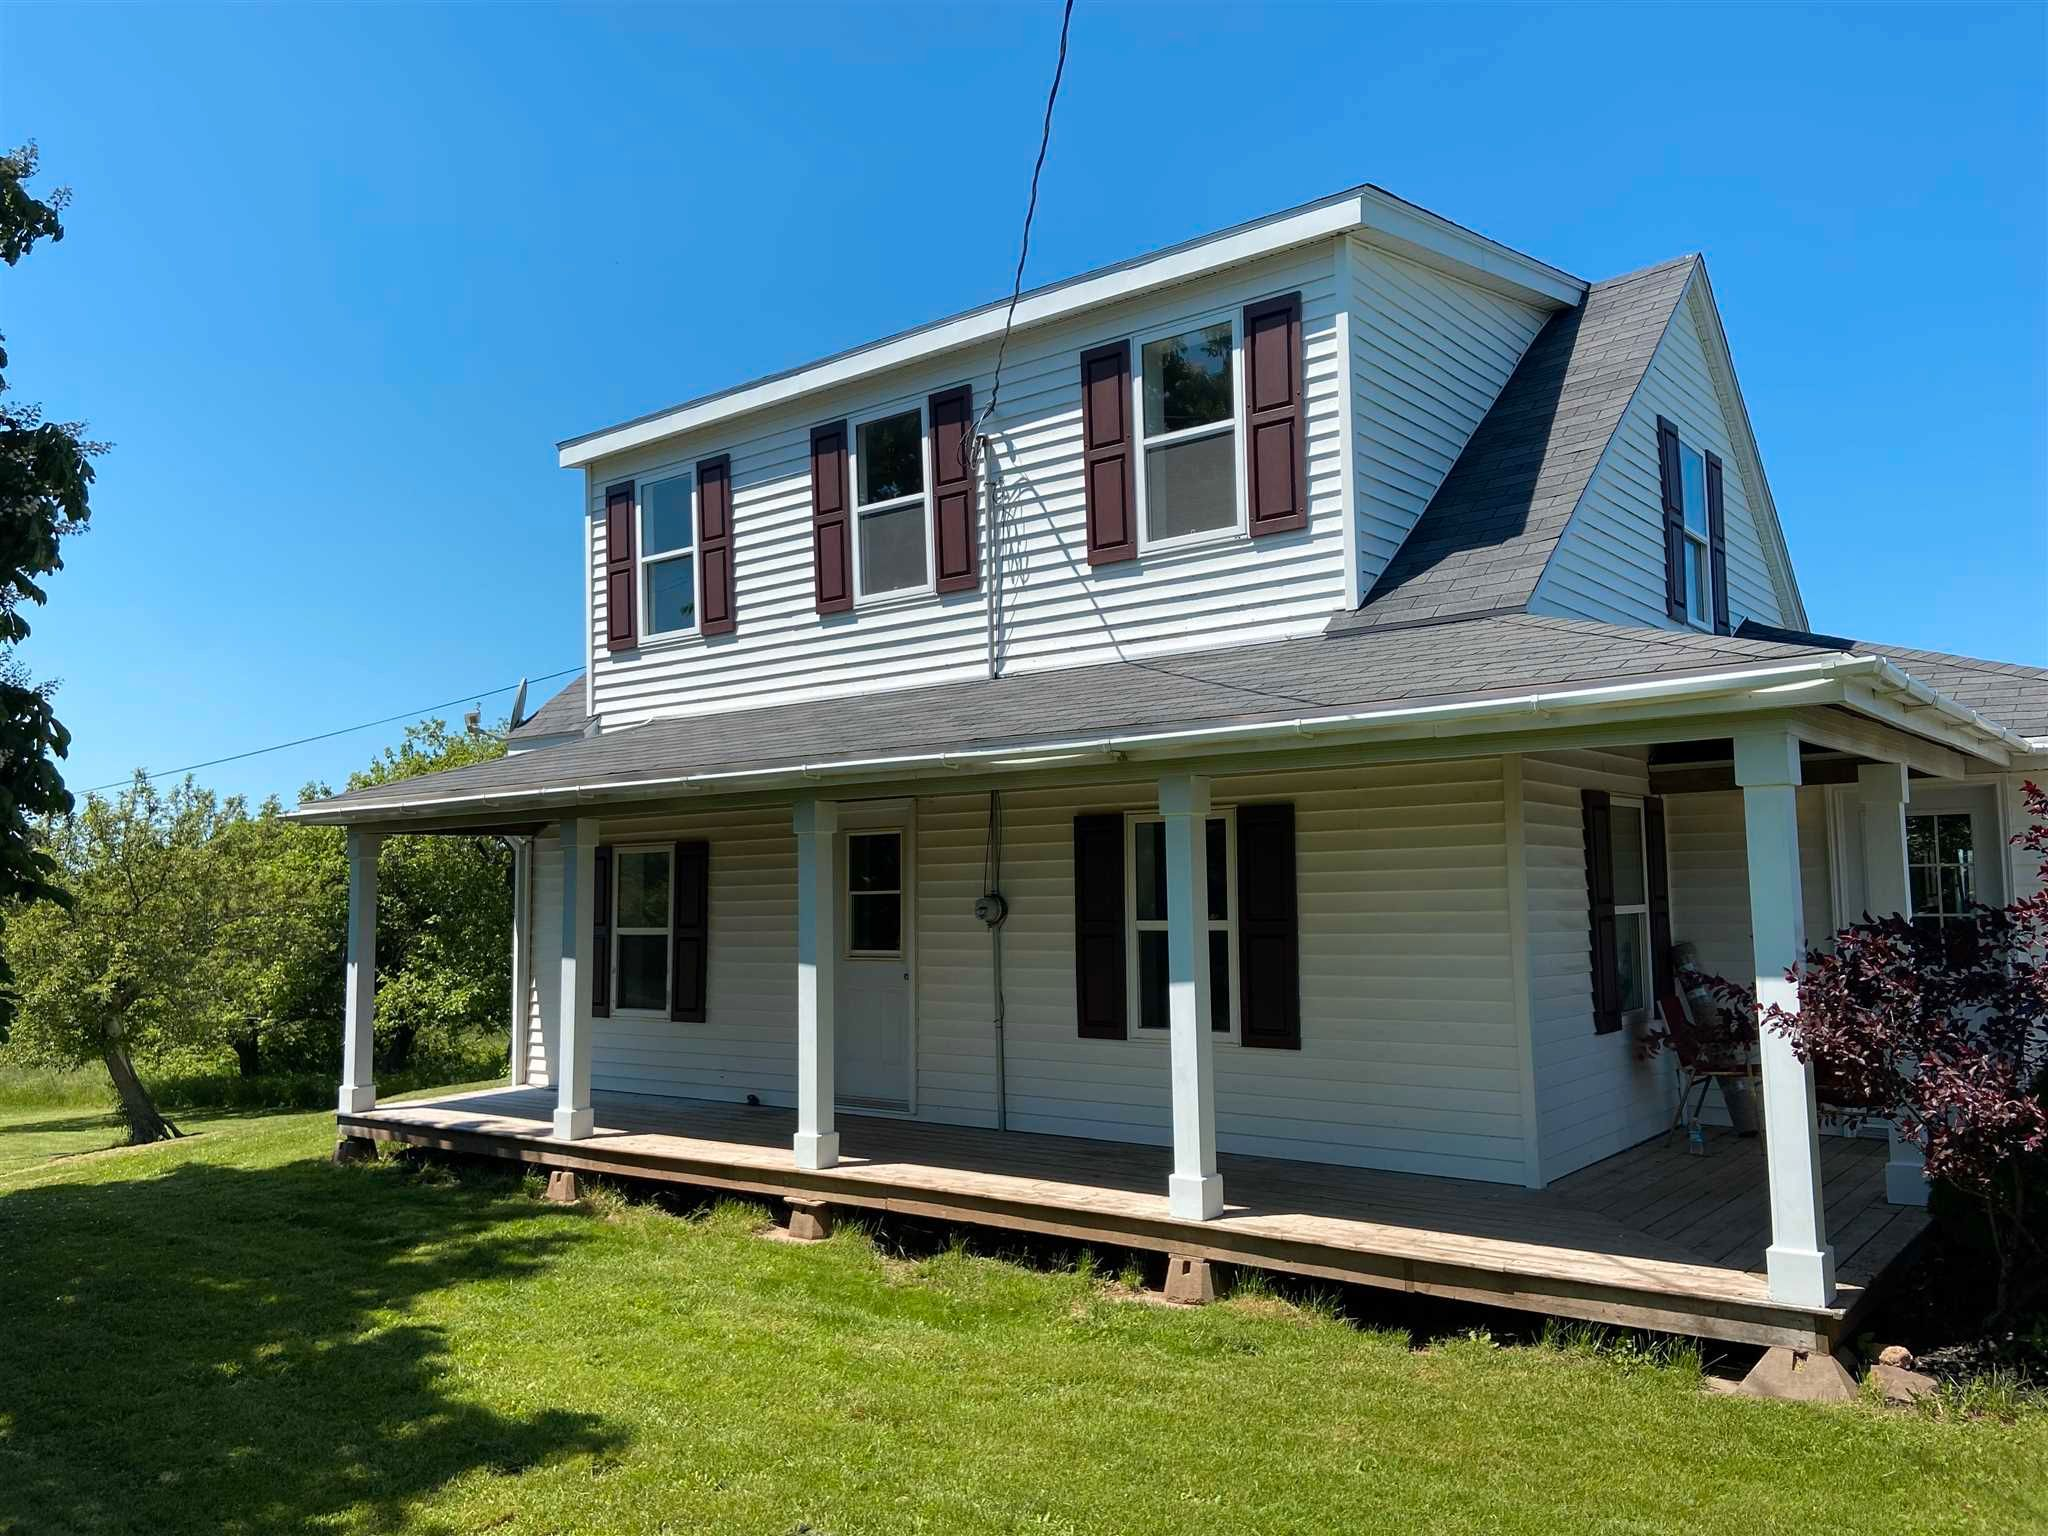 Main Photo: 1859 Upper River John Road in Middleton: 103-Malagash, Wentworth Residential for sale (Northern Region)  : MLS®# 202115334